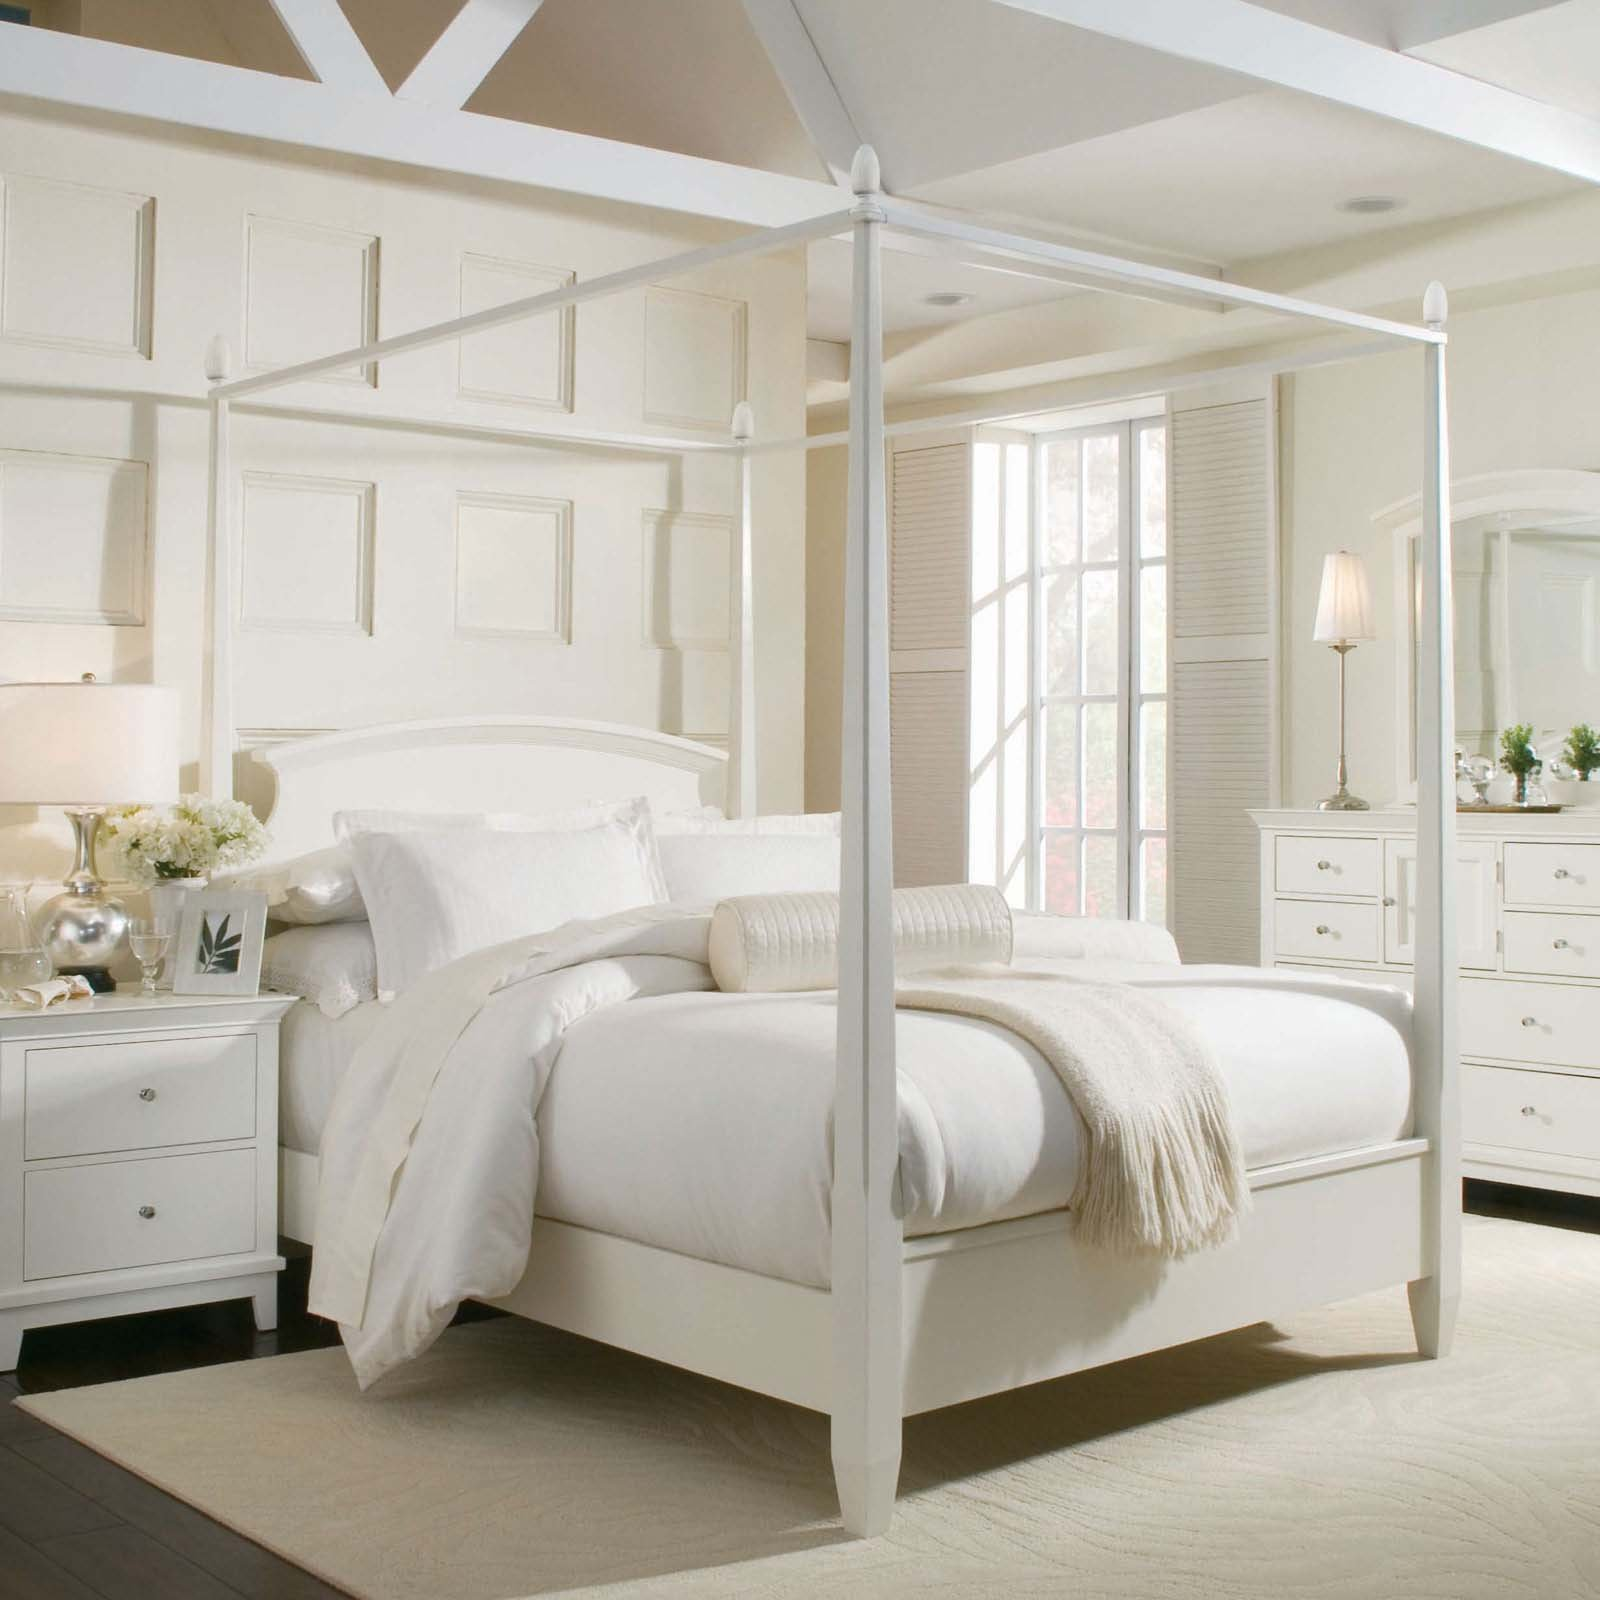 White Dressers and Canopy Bedroom Sets inside Stunning Bedroom with Wide Carpet and Wooden Flooring